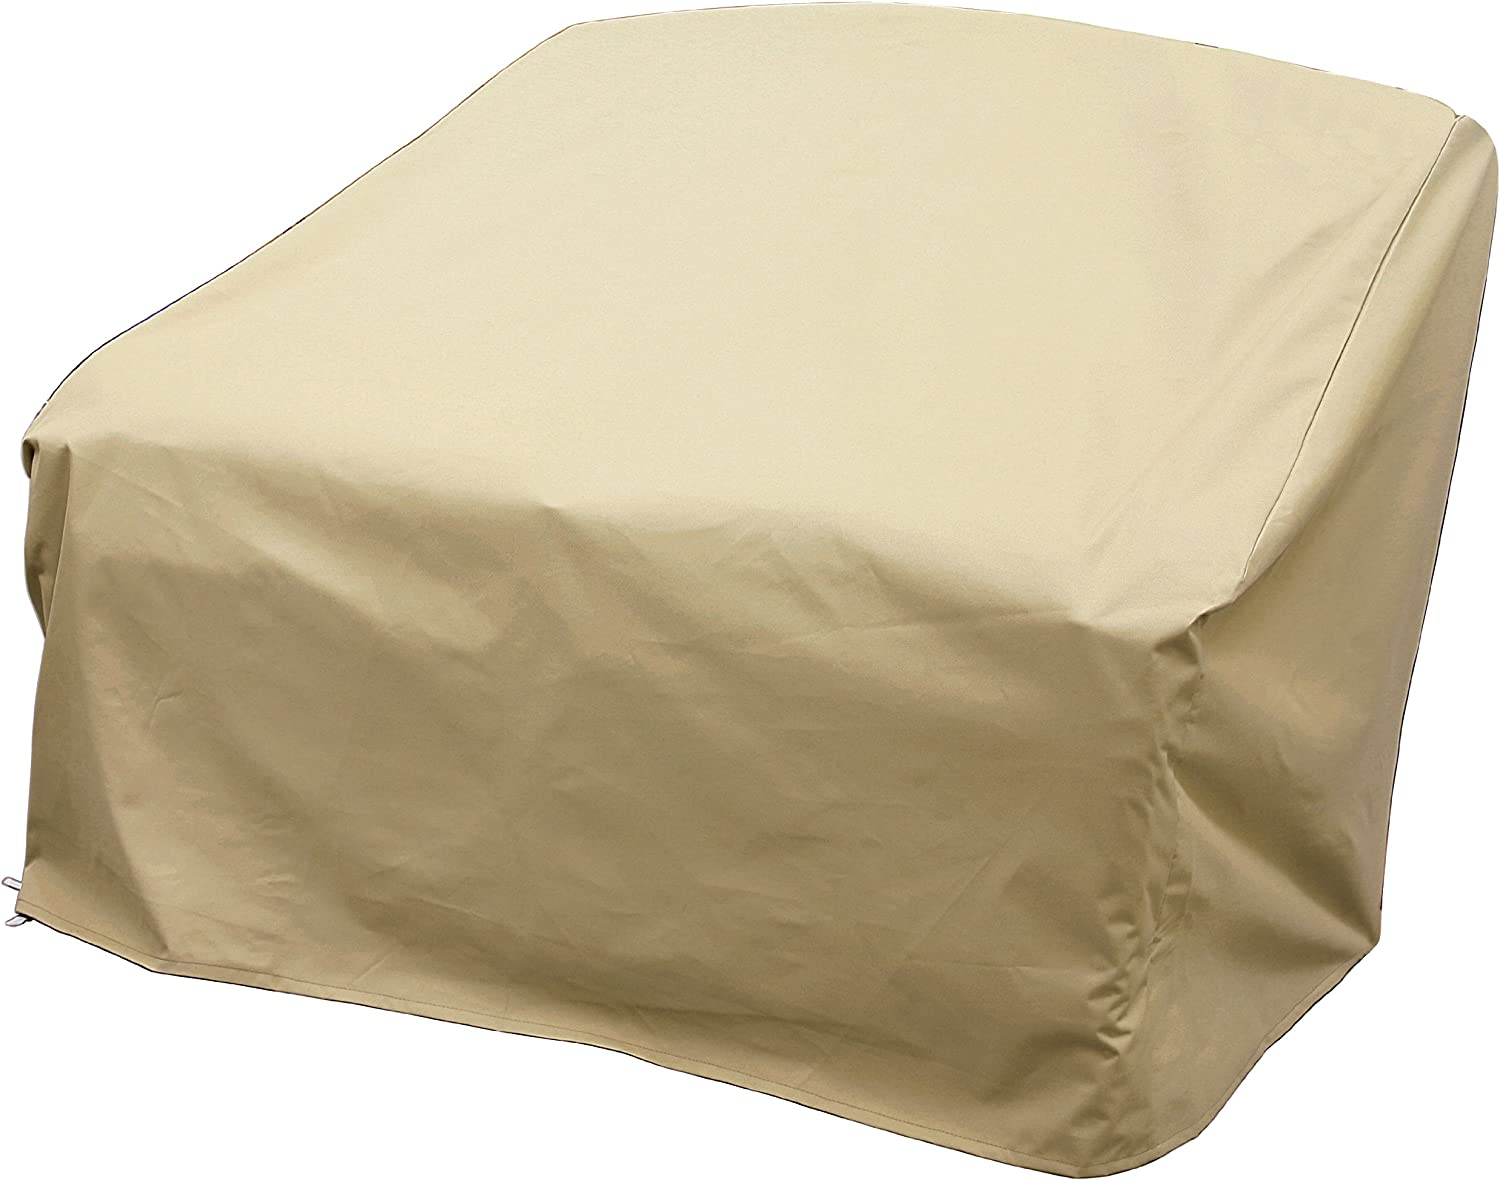 Modern Leisure 7466 Love Seat Cover: Garden & Outdoor